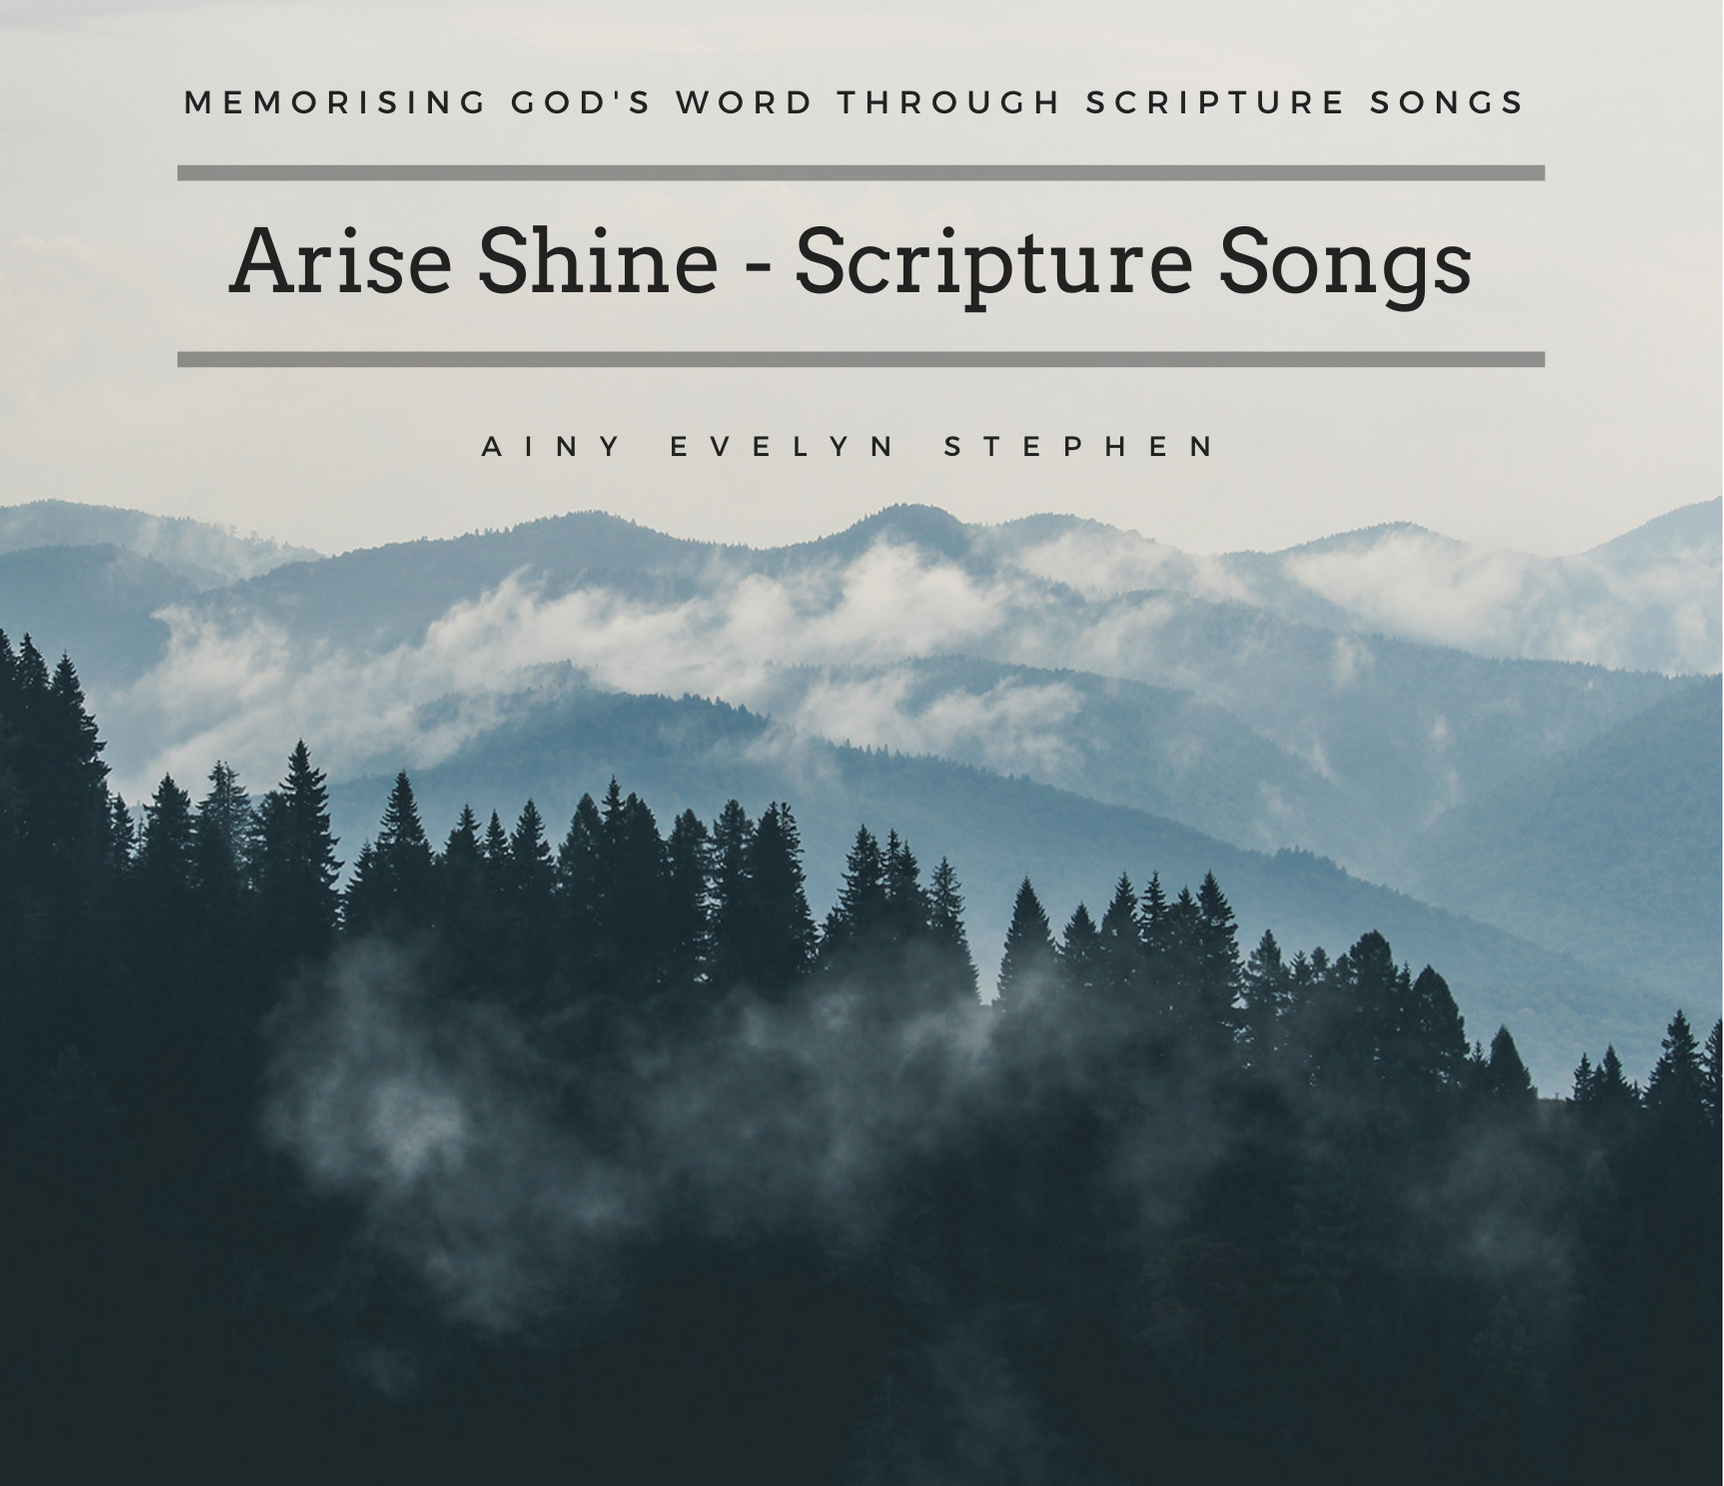 Memorizing God's Word Through Scripture Songs: Rising Christian Artist Ainy Evelyn Stephen Mesmerizes Listeners with New Album